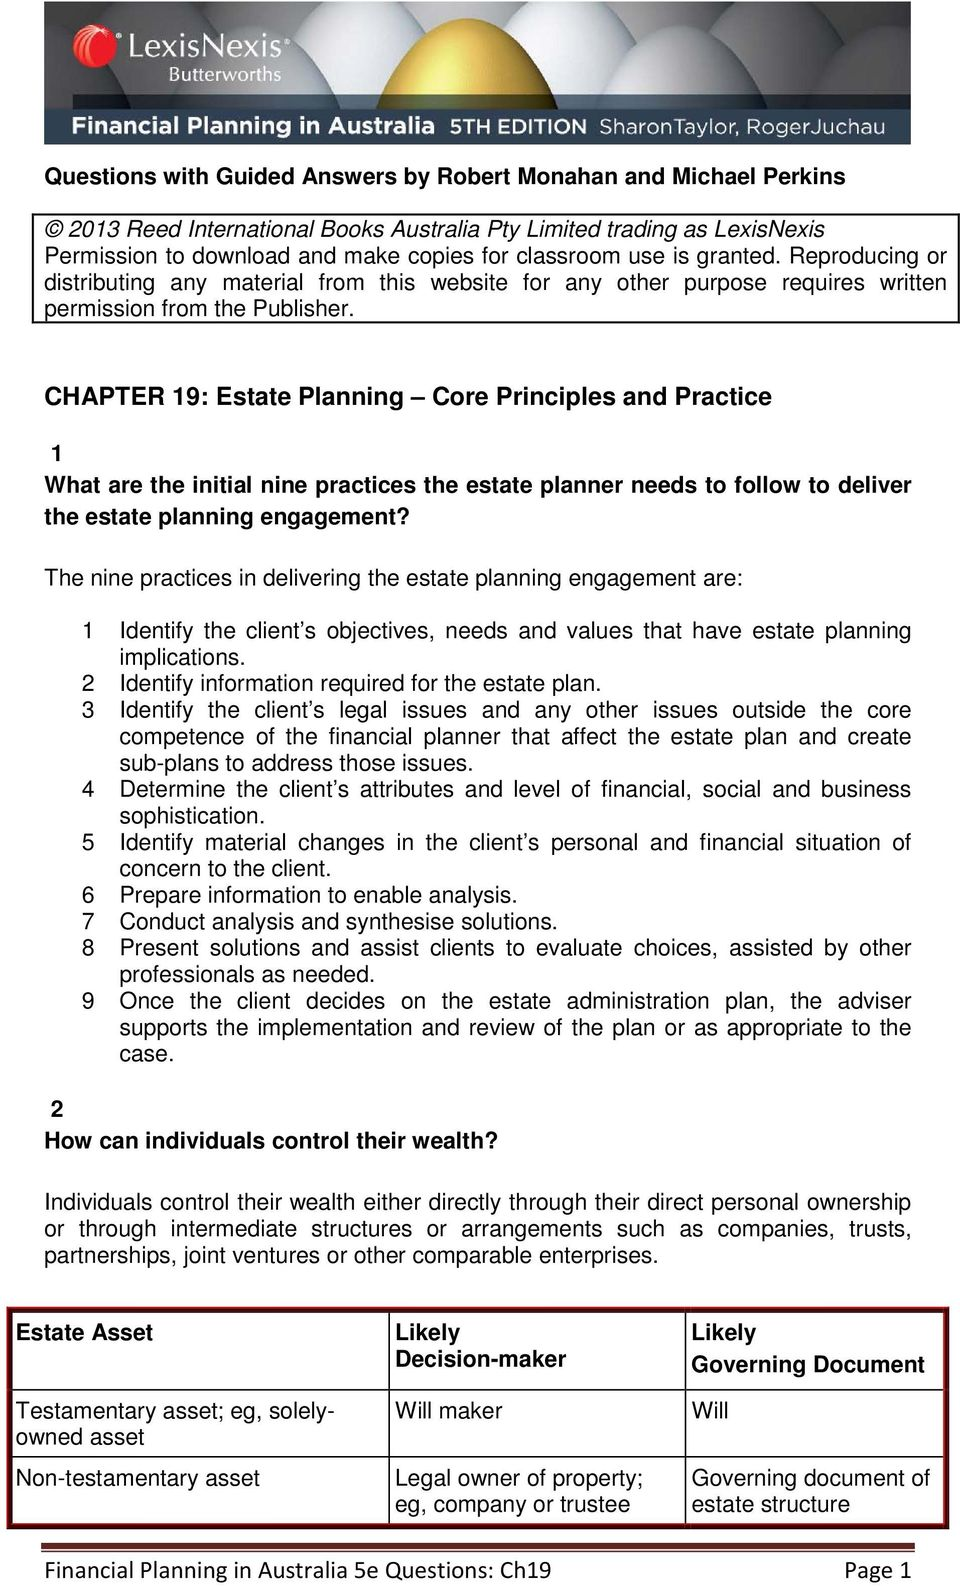 CHAPTER 19: Estate Planning Core Principles and Practice 1 What are the initial nine practices the estate planner needs to follow to deliver the estate planning engagement?